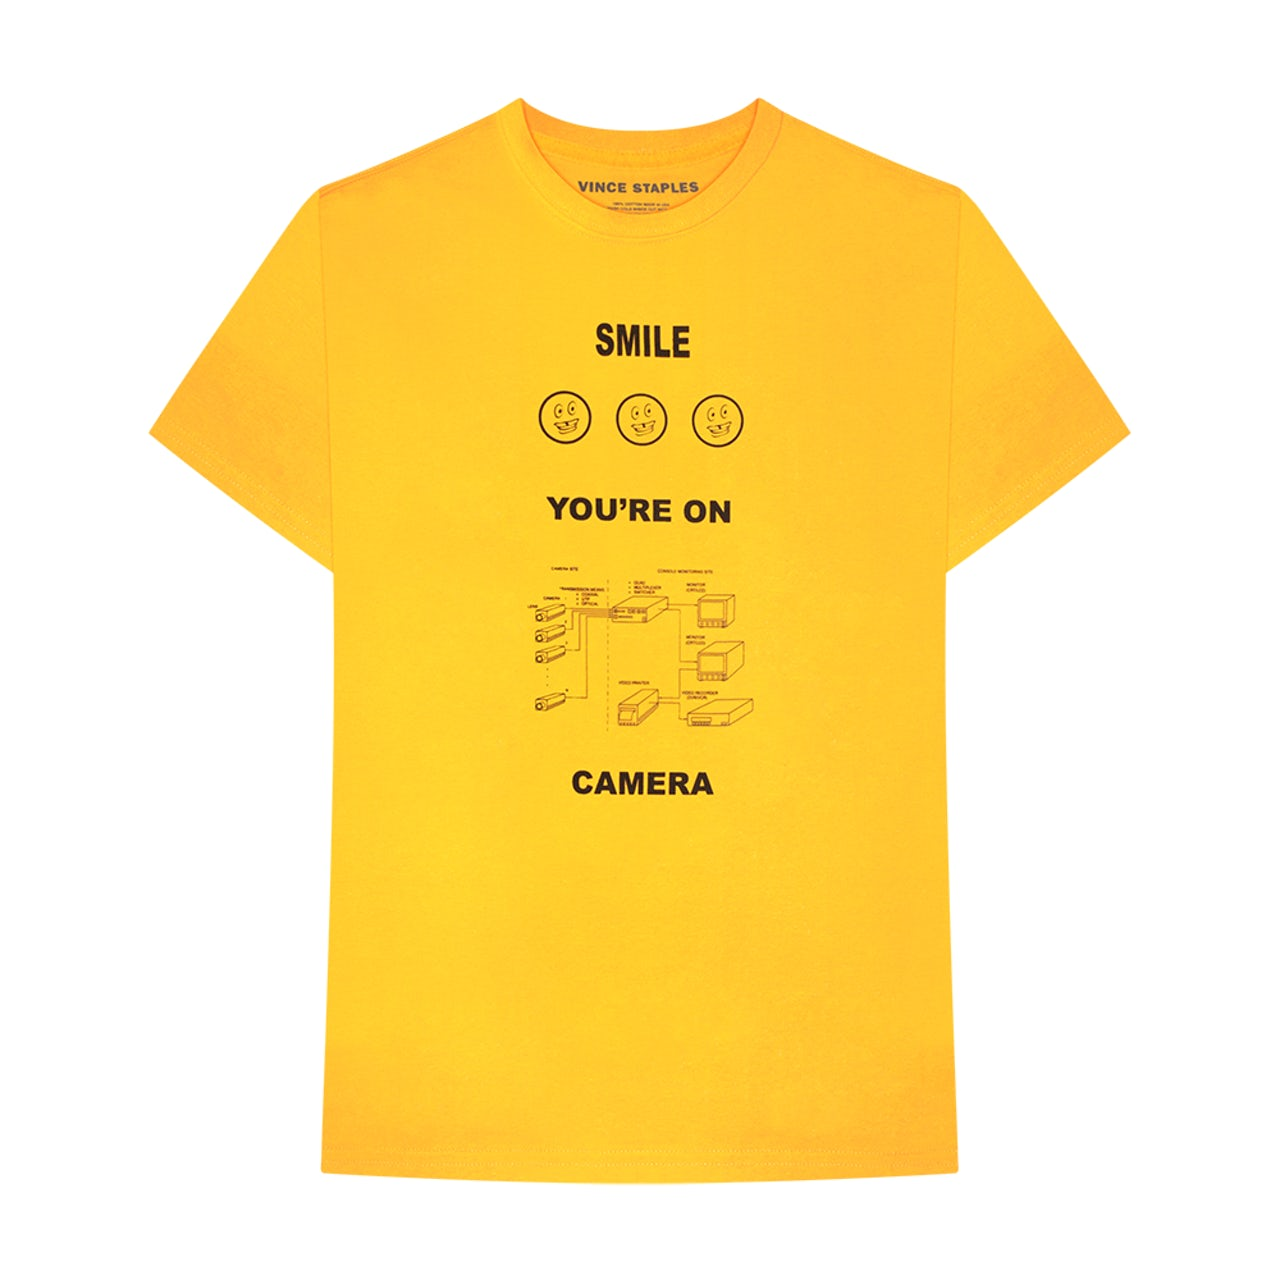 Vince Staples SMILE YOU'RE ON CAMERA T-SHIRT